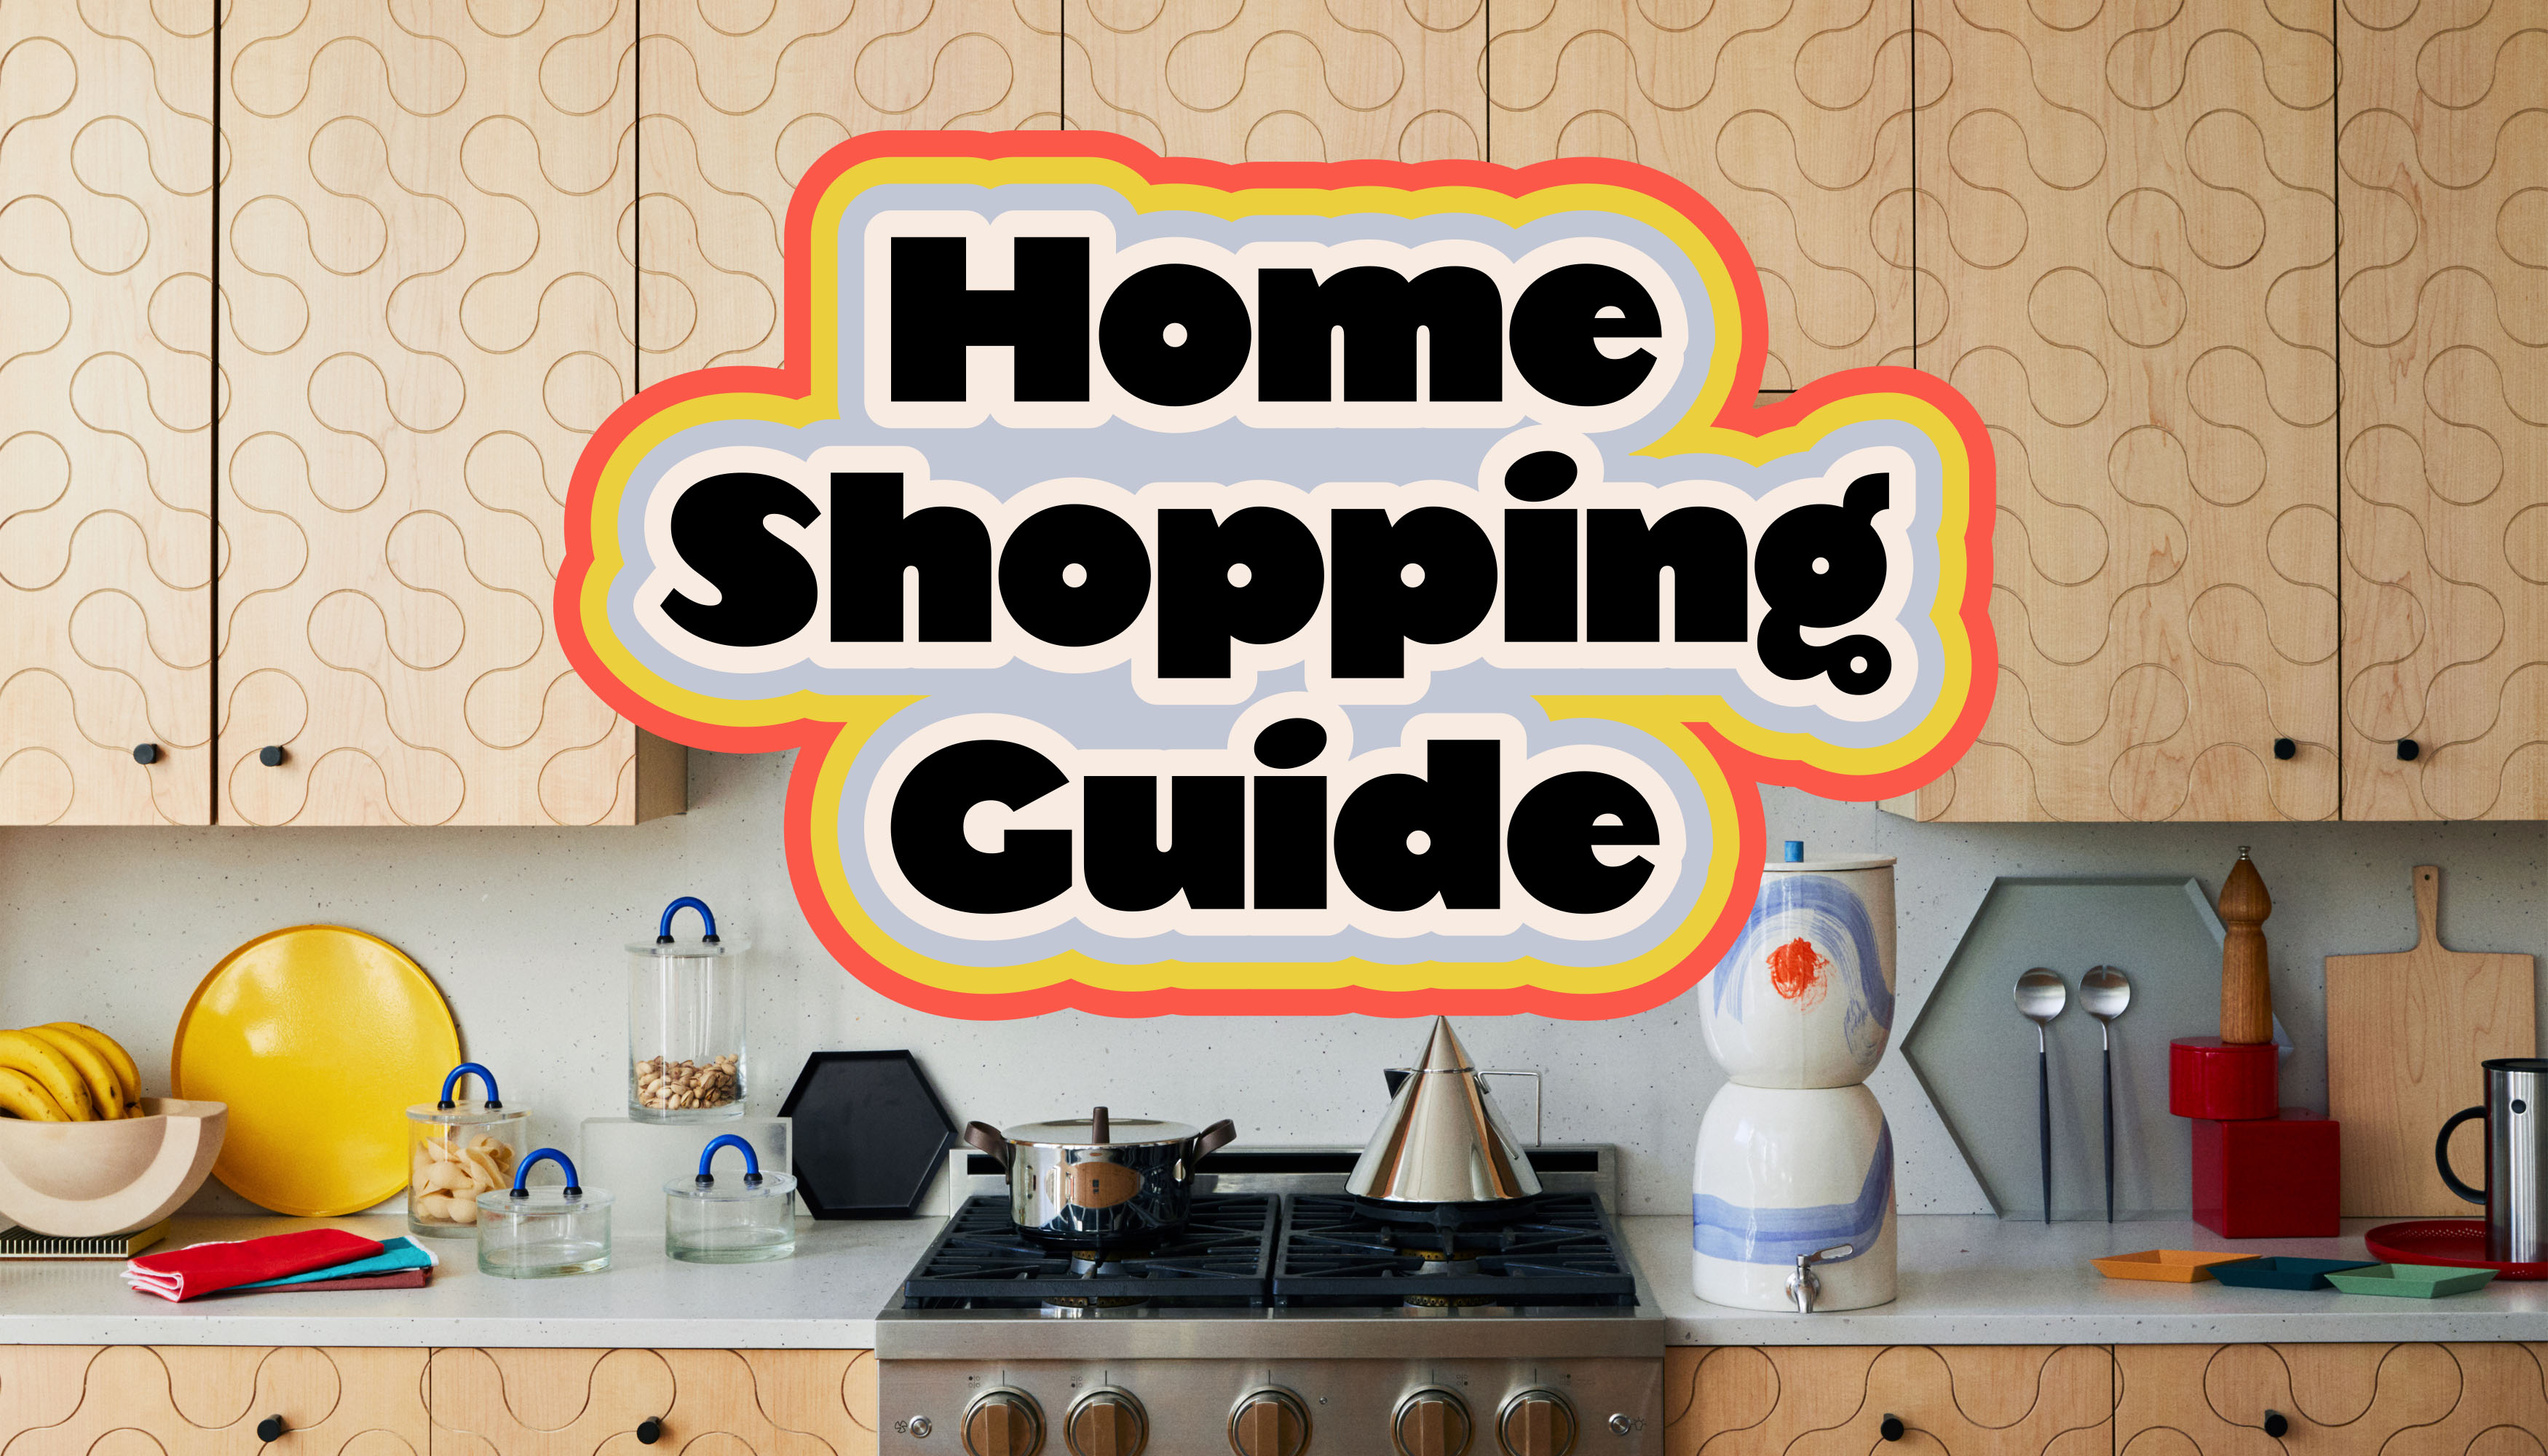 A kitchen counter with various kitchen appliances and tan cabinetry. Superimposed on the area are the words: Home Shopping Guide.